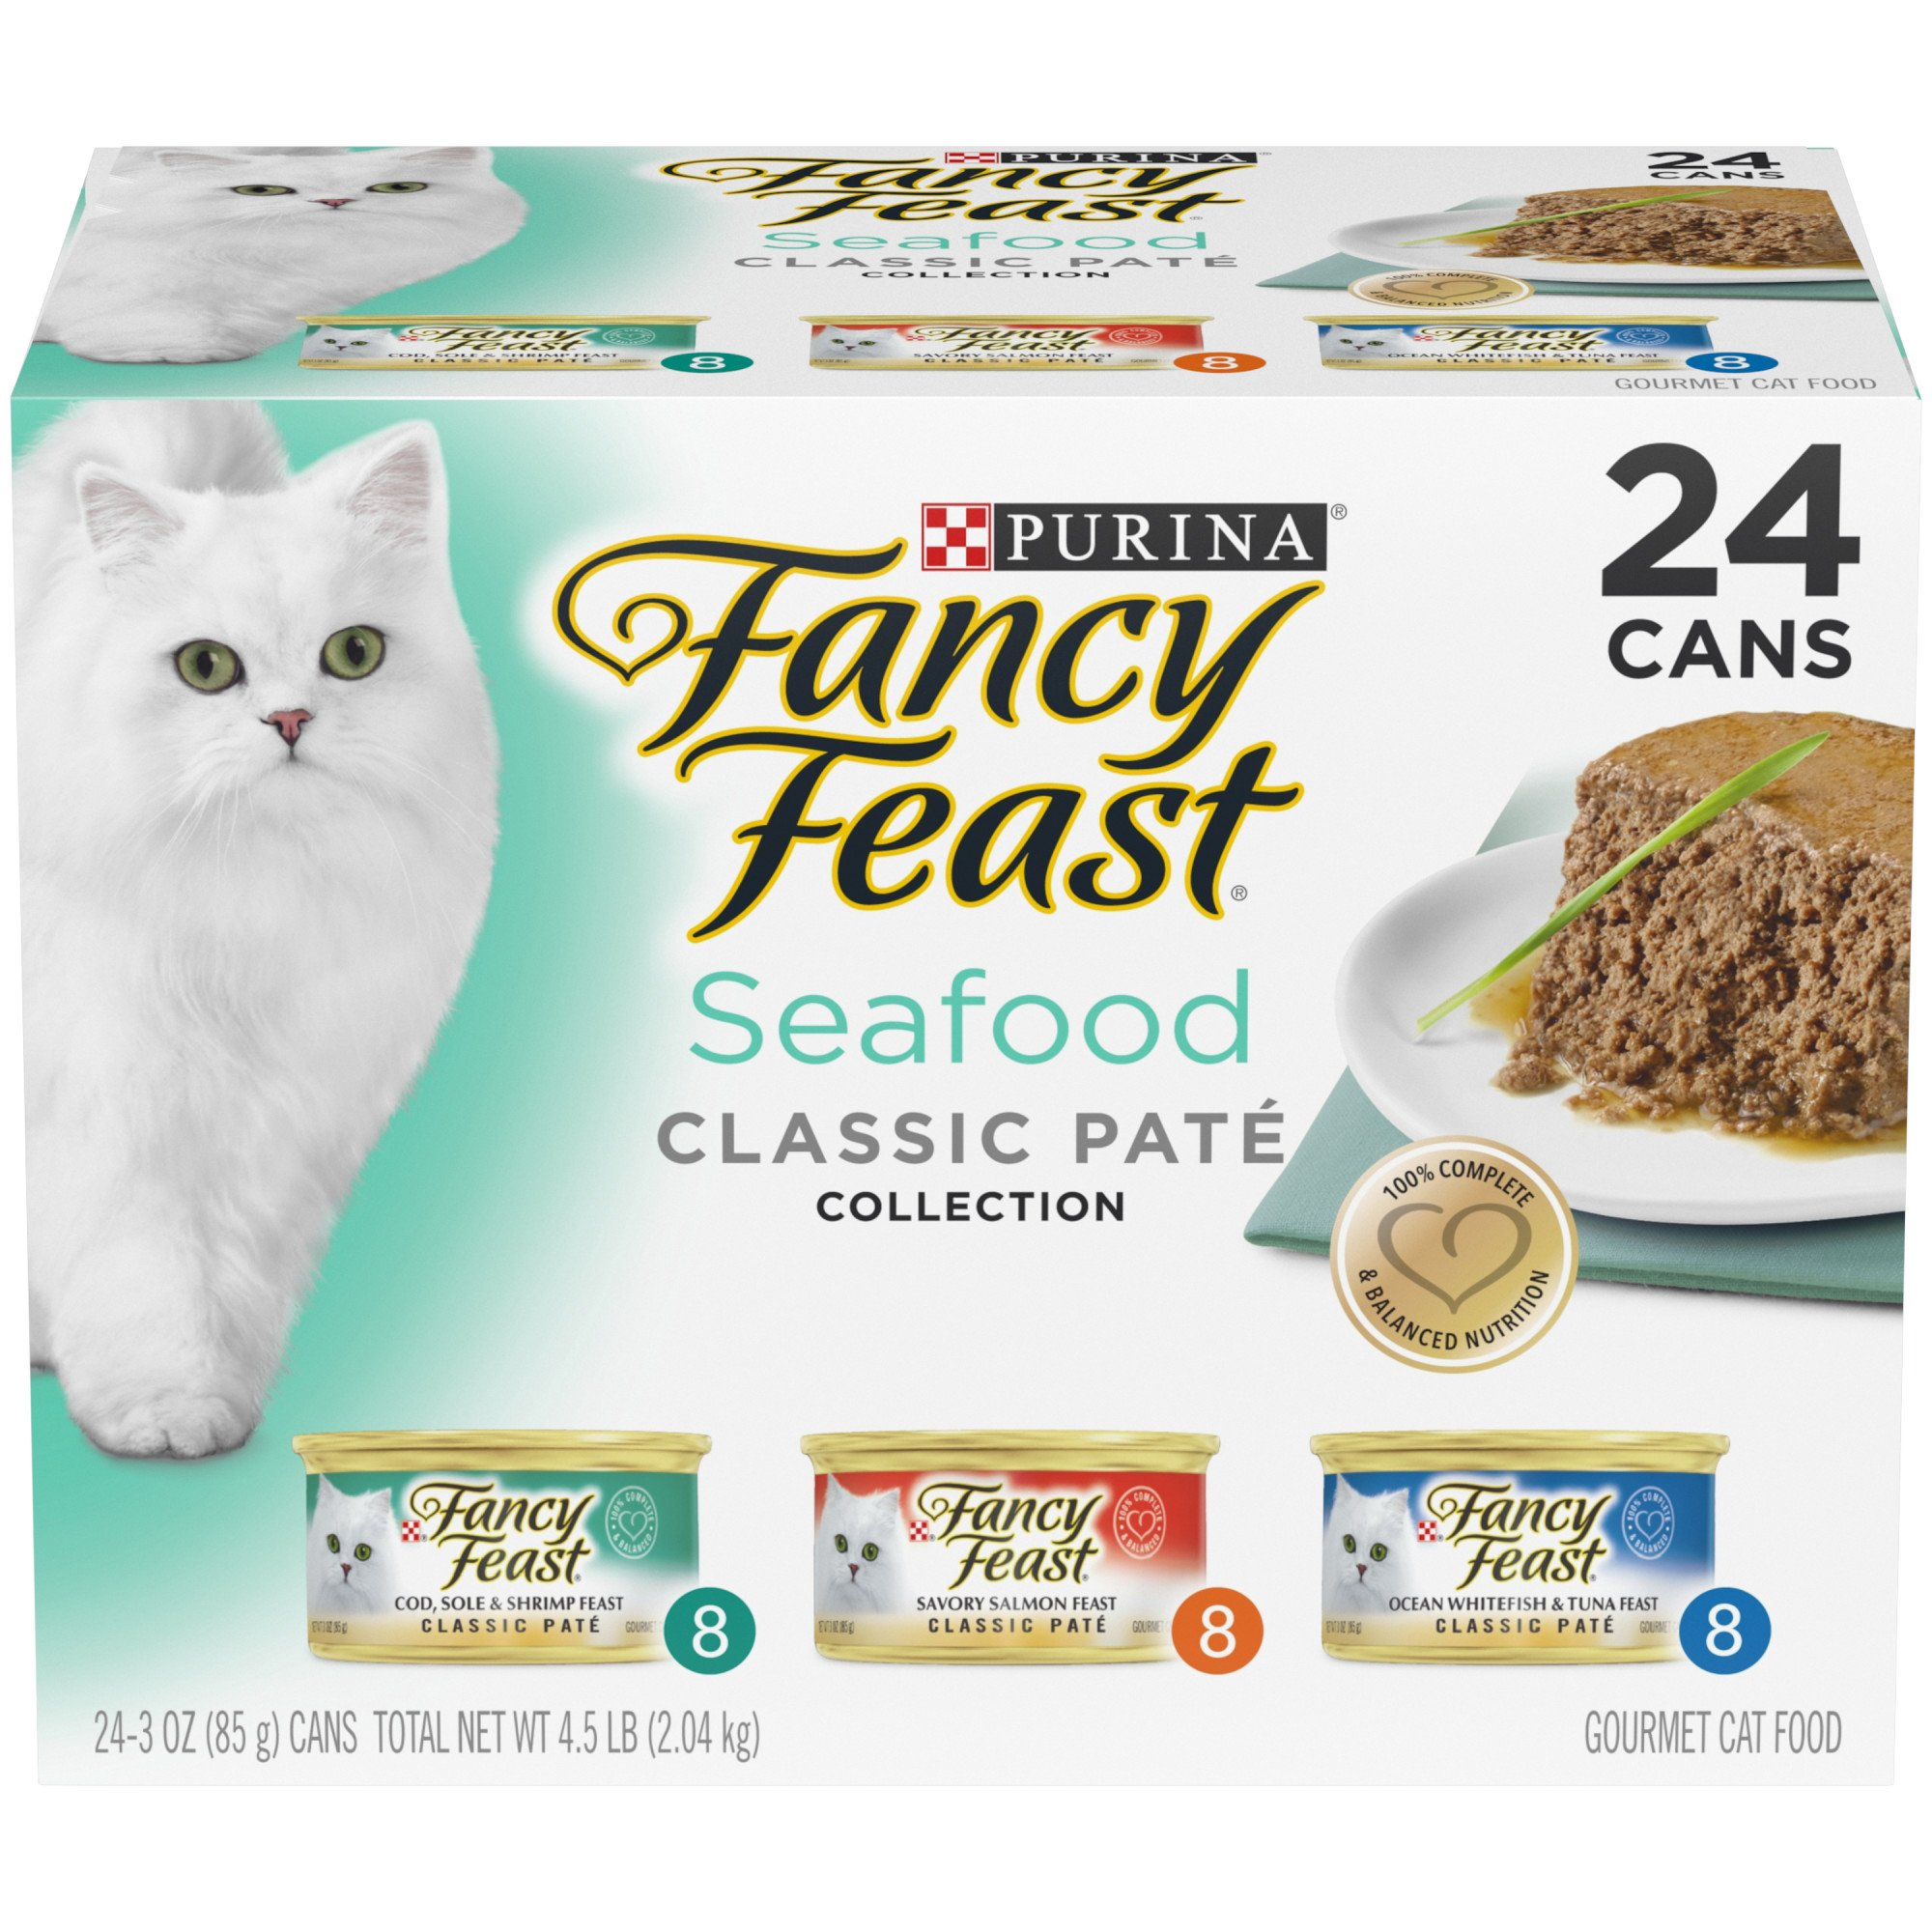 Purina Fancy Feast Seafood Classic Pate Wet Cat Food, 3 oz., Case of 24